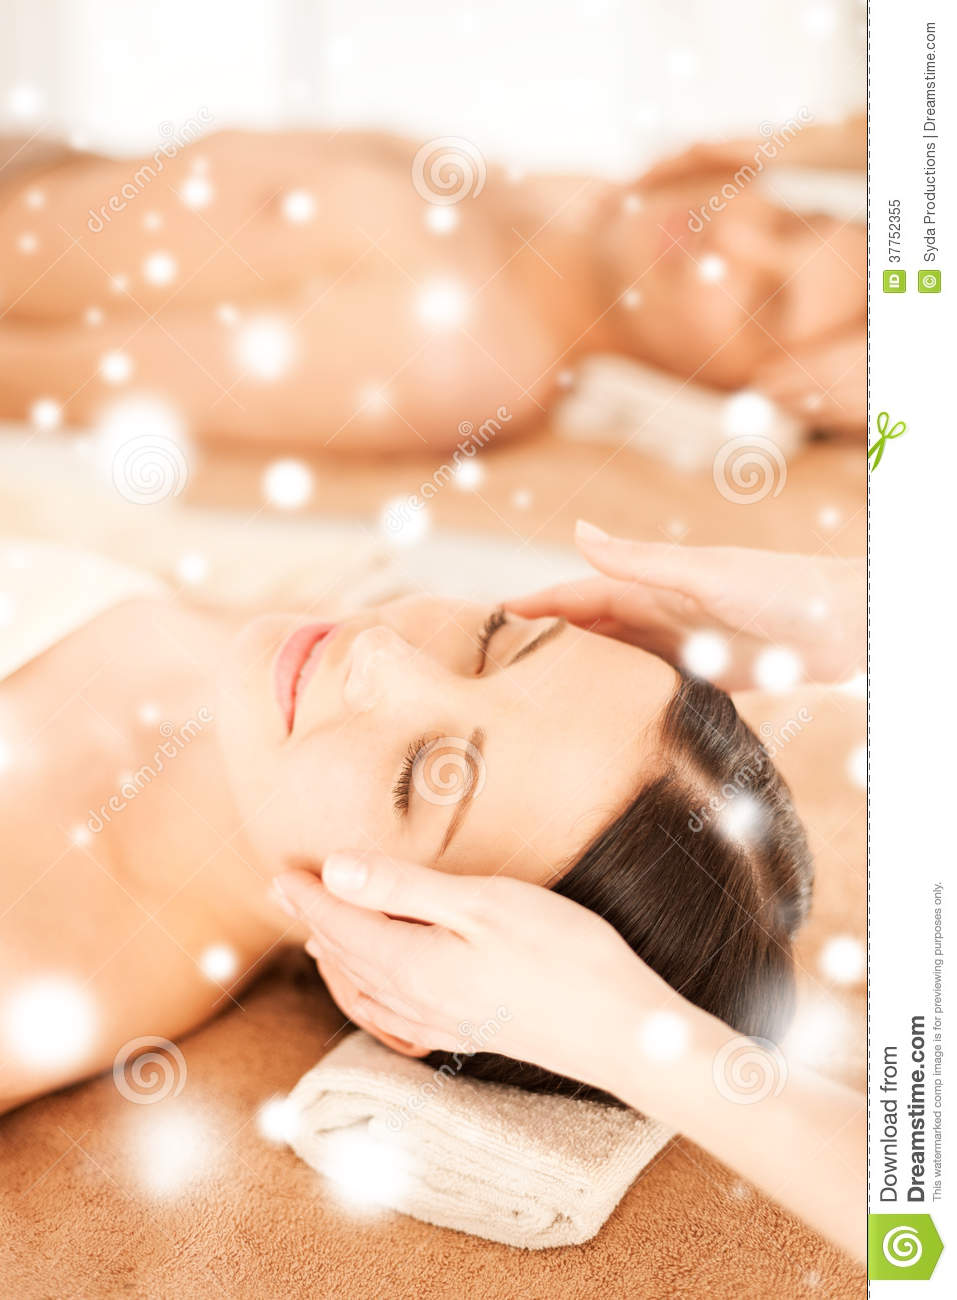 Couple in spa salon getting face treatment royalty free for Health spa vacations for couples